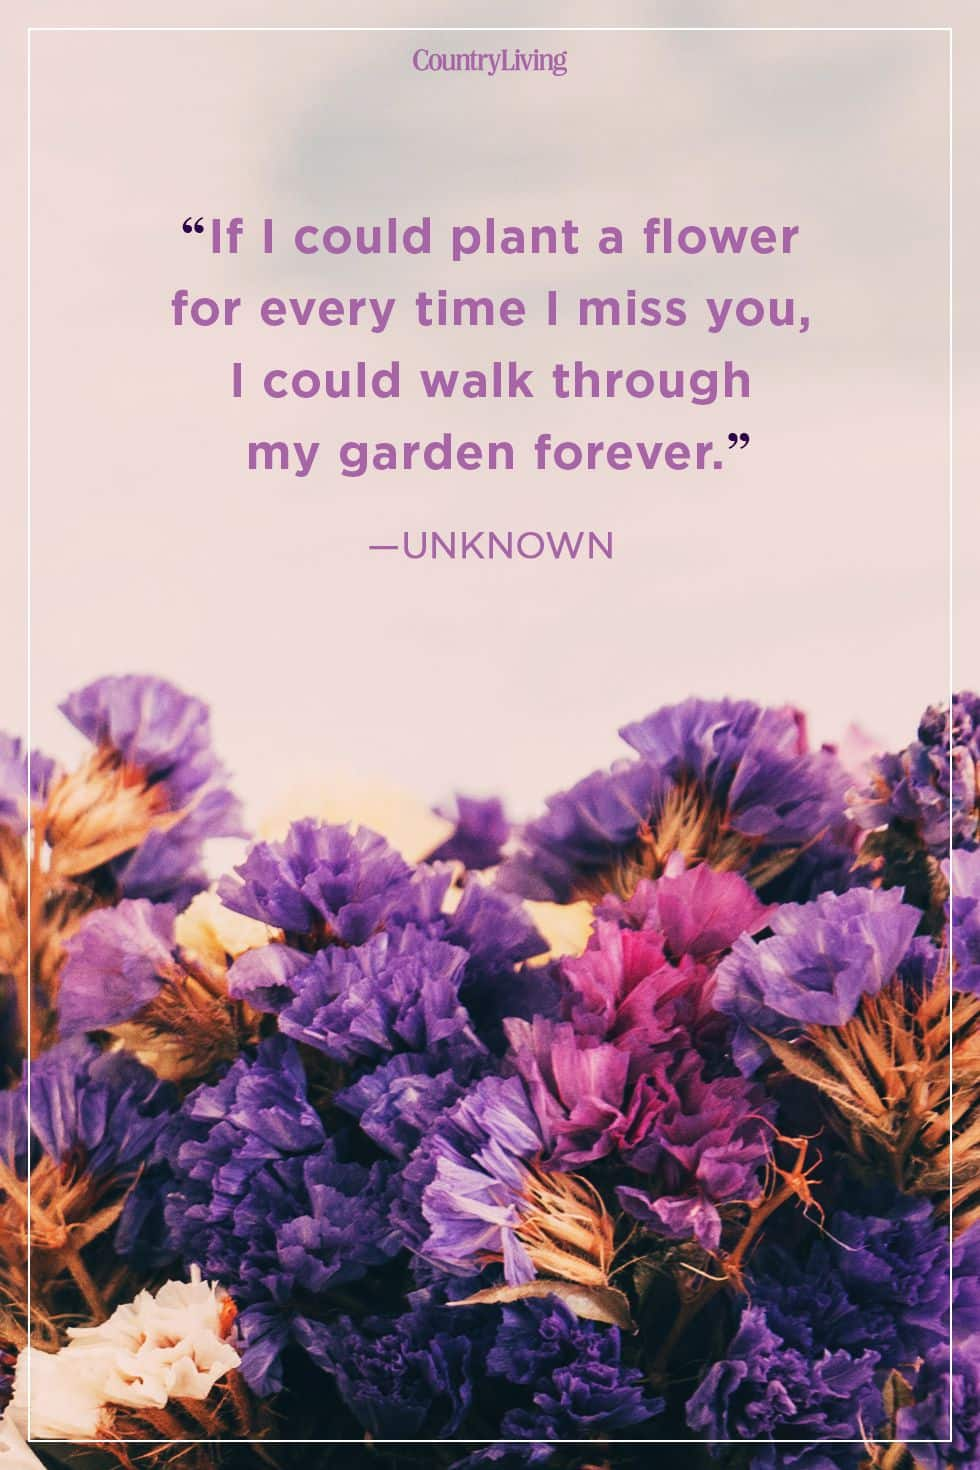 romantic messages for boyfriend love messages for him from the heart cute i miss you quotes miss you so much quotes cute missing you quotes